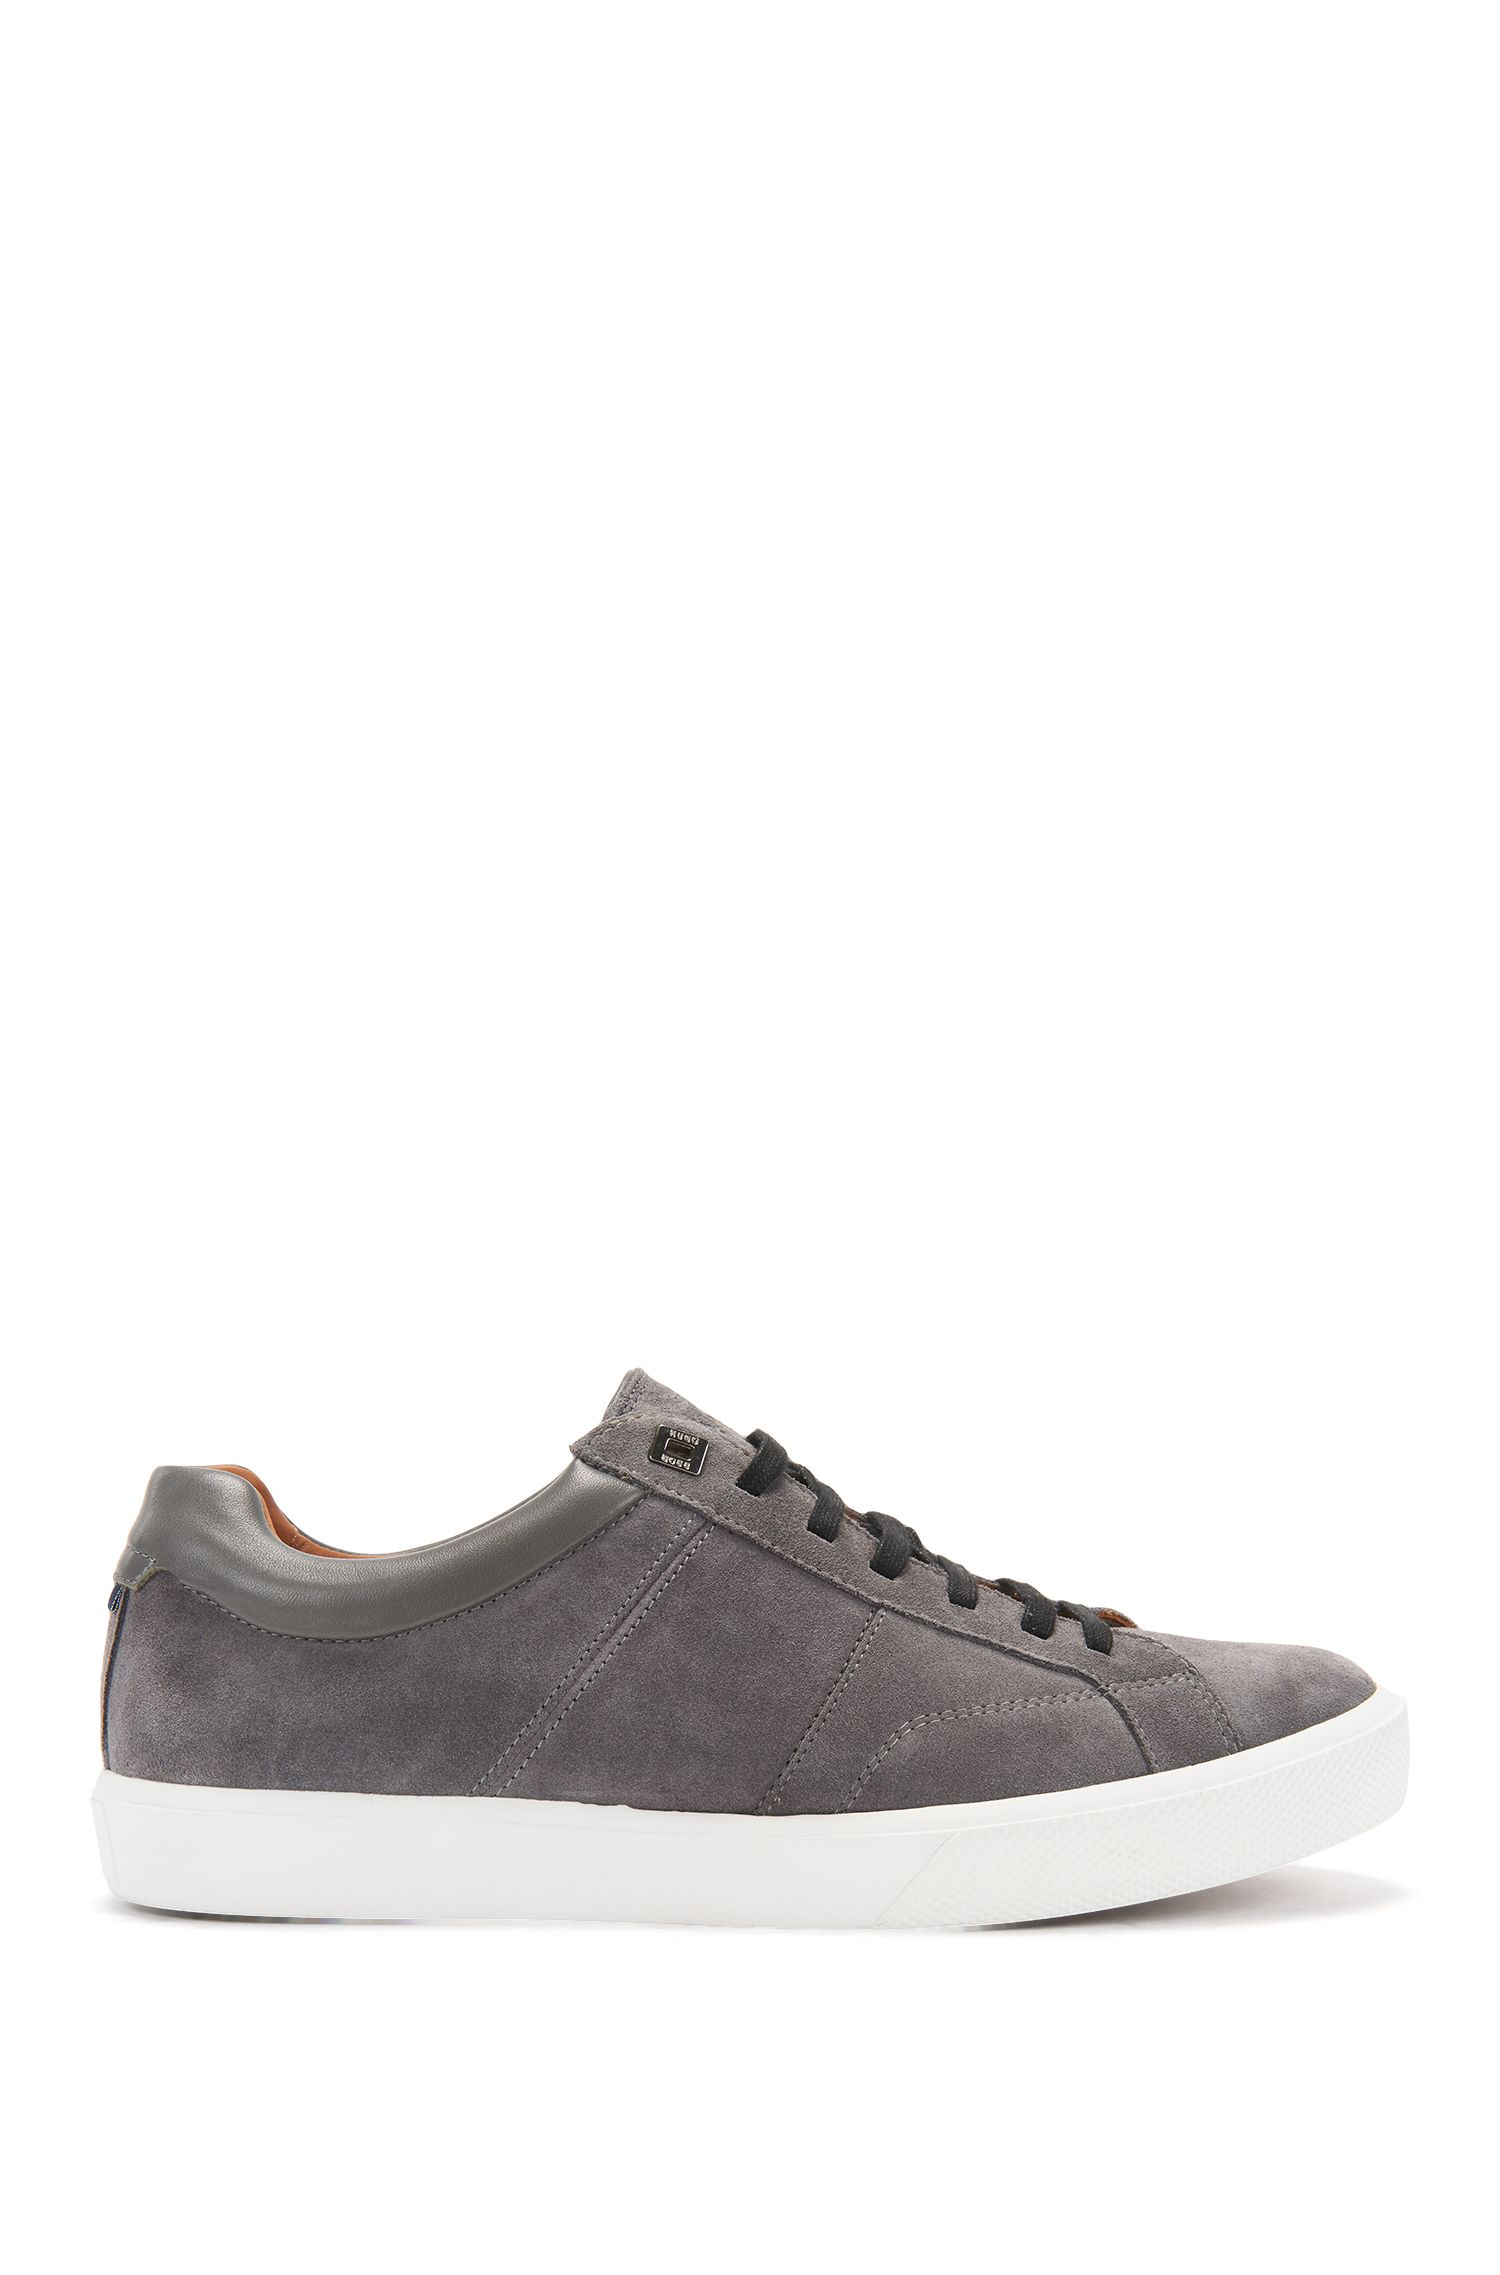 Tennis-inspired trainers with Italian calfskin-suede uppers